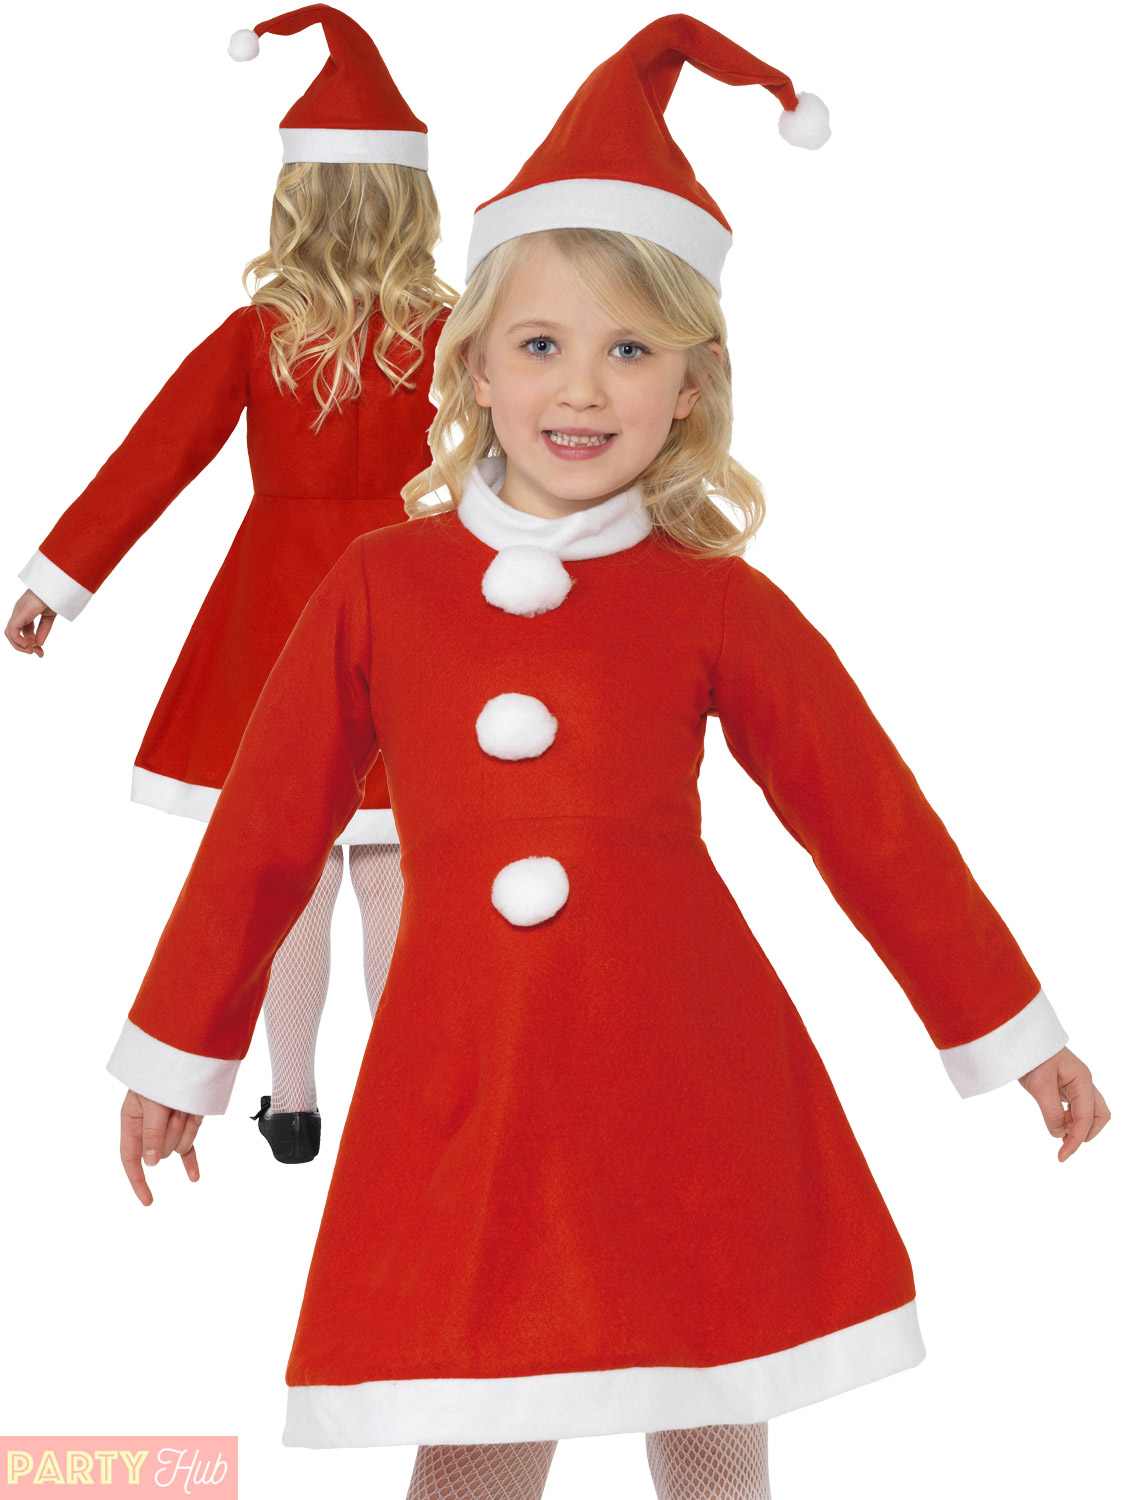 7ac769b2ad2 Details about Girls Miss Santa Costume Childs Christmas Fancy Dress Kids  Value Xmas Outfit